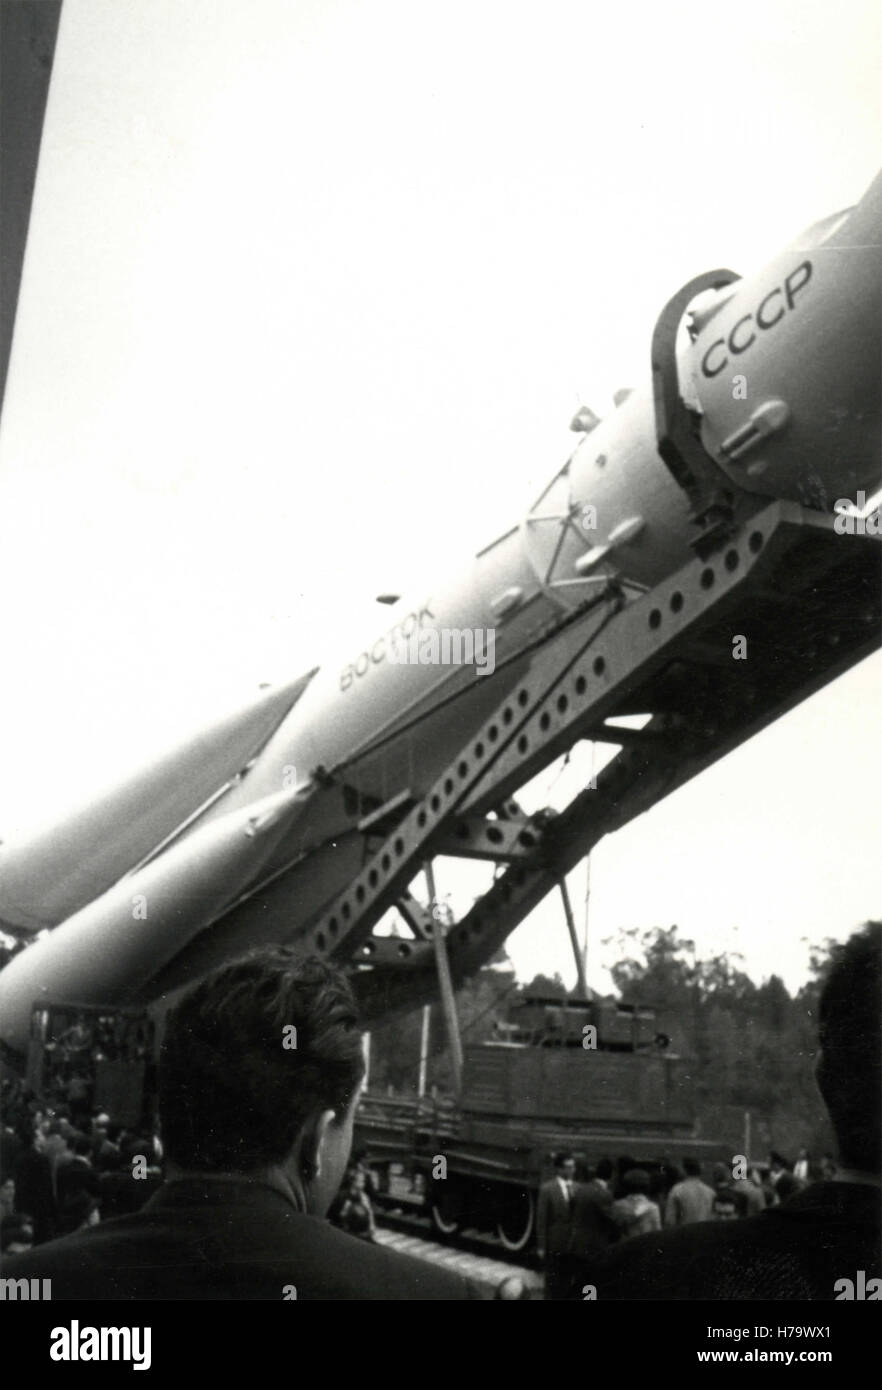 The Boctok rocket, USSR - Stock Image